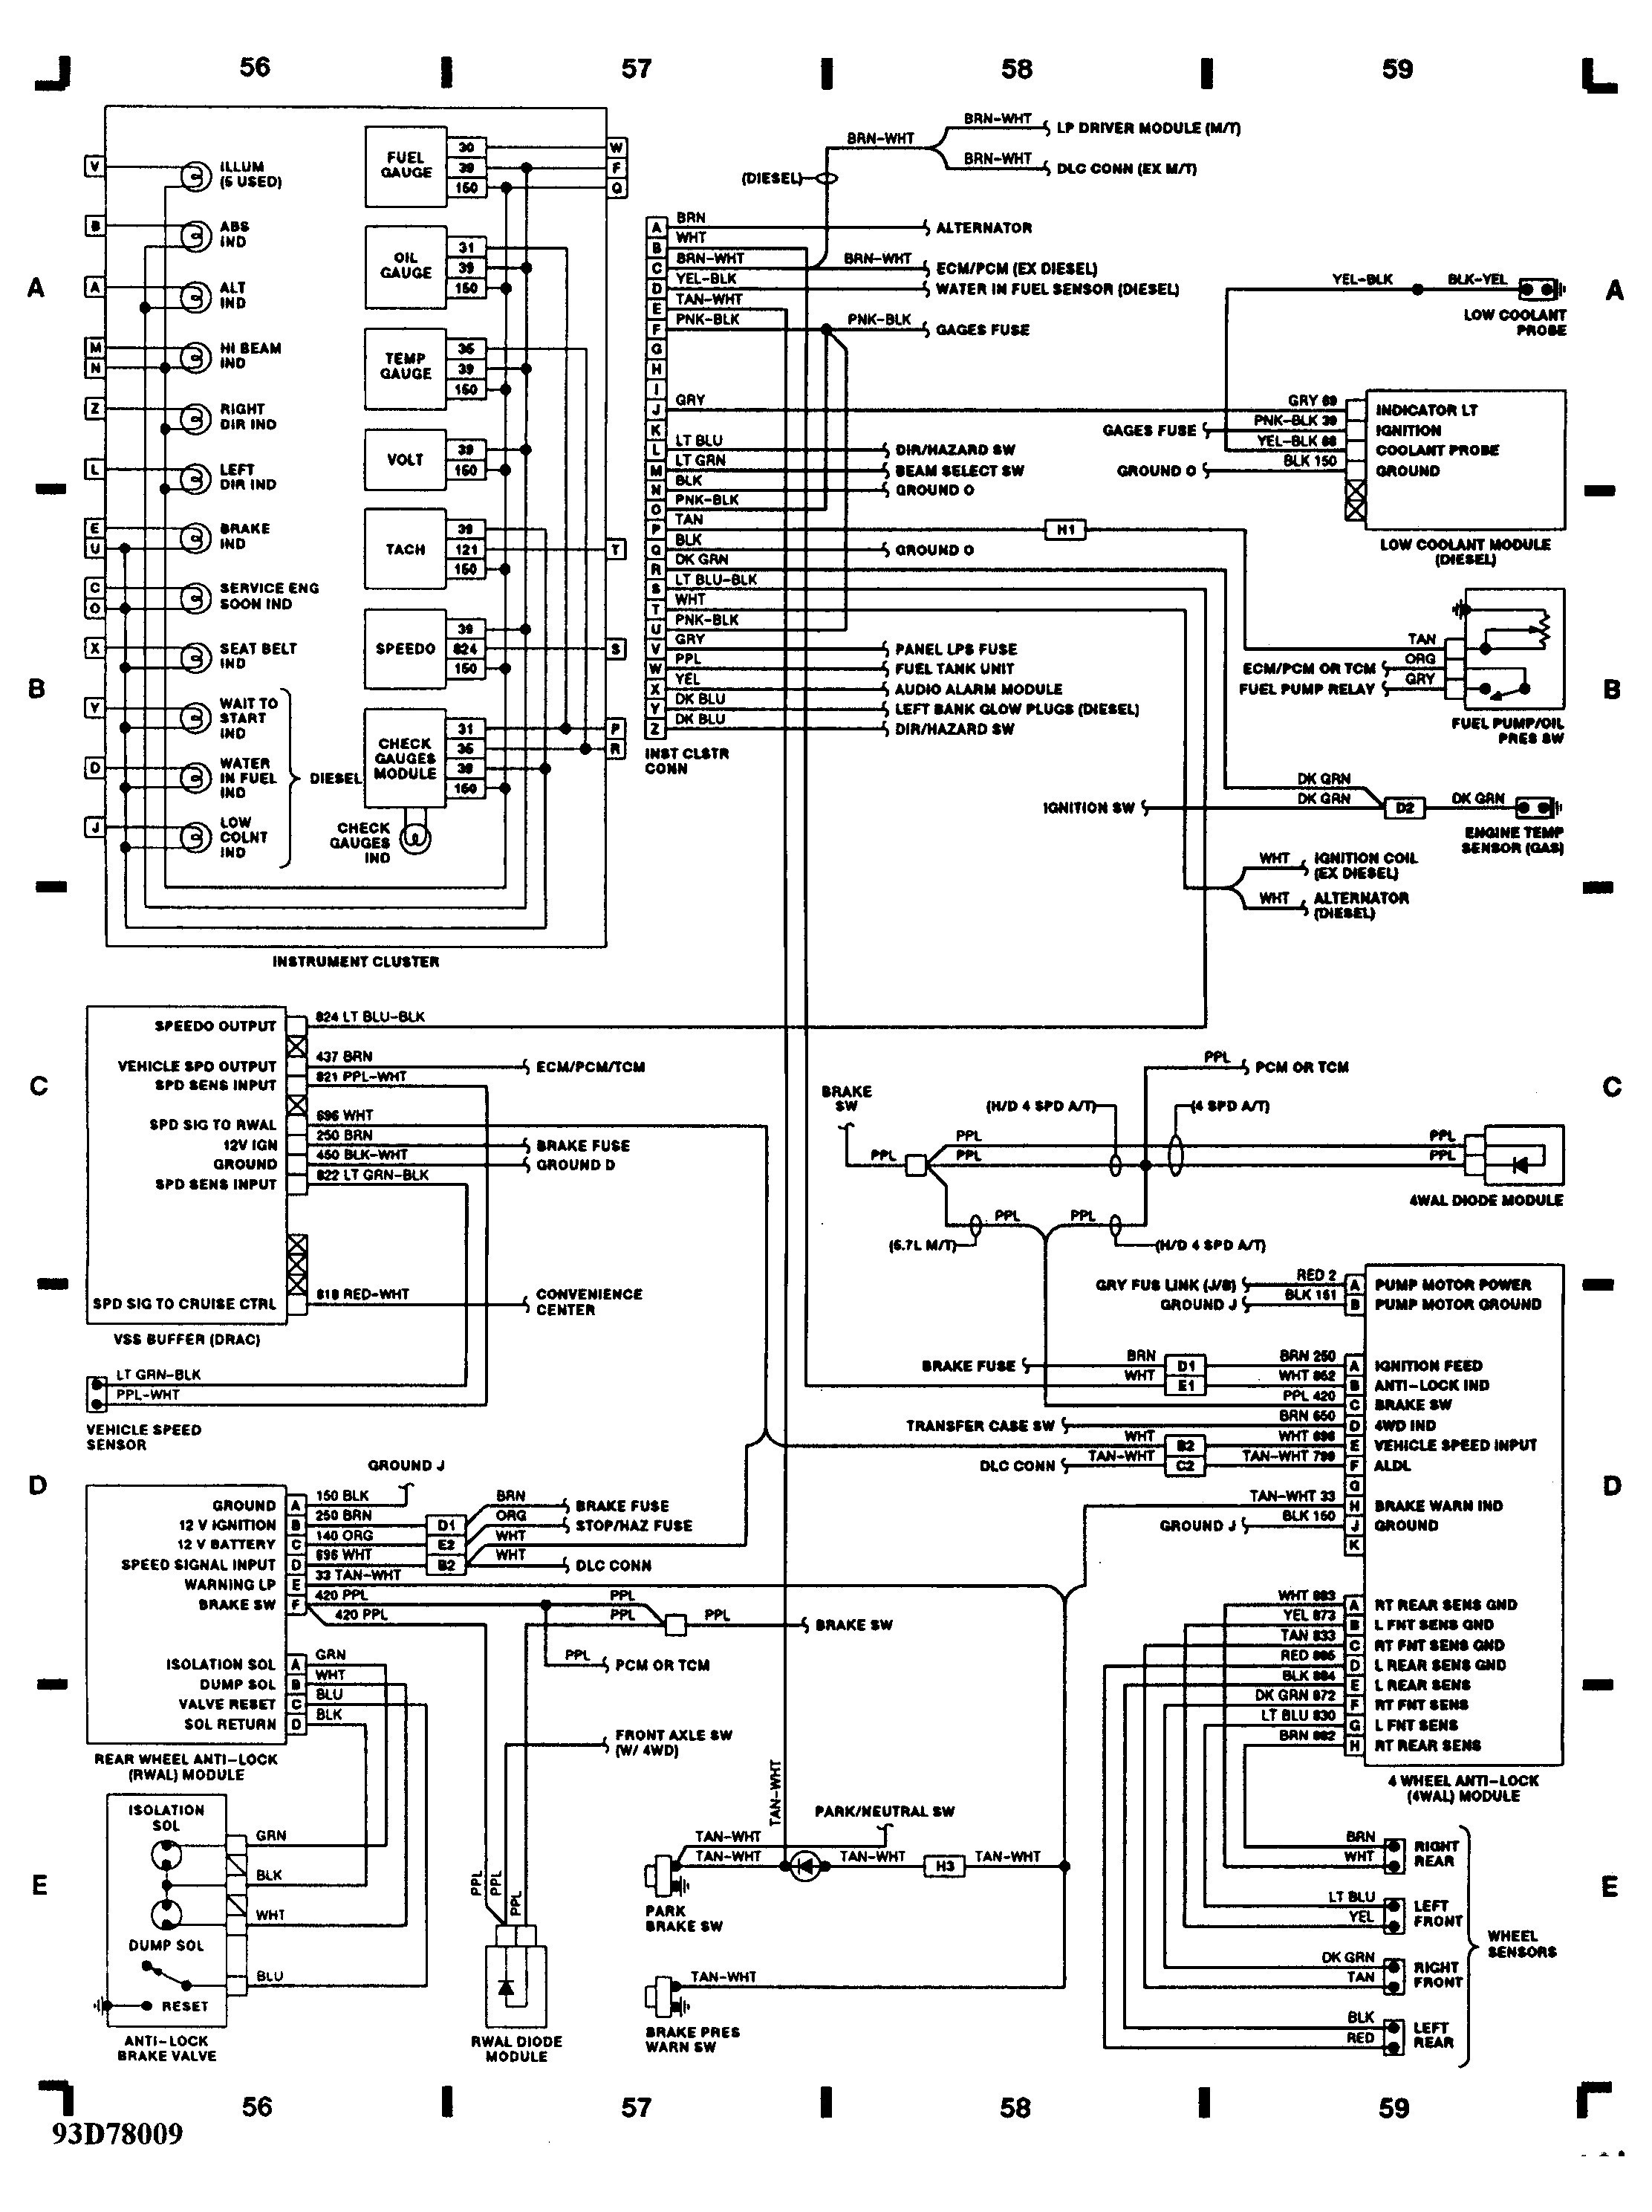 95 chevy lumina engine diagram wiring diagram list